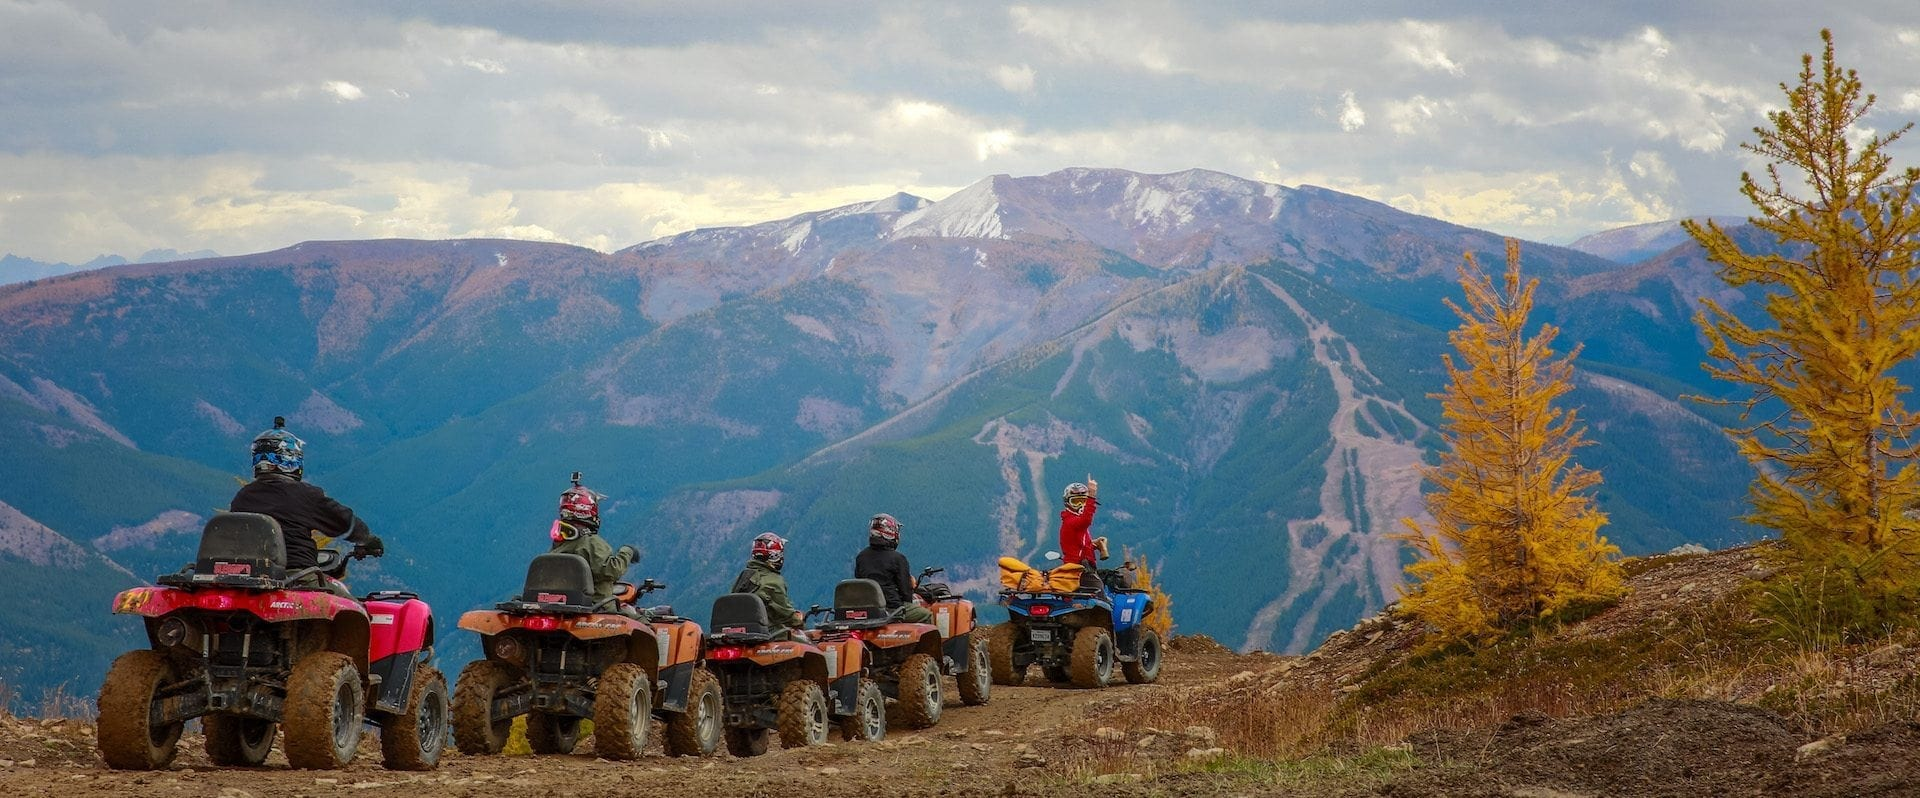 Paradise Mine ATV Tour